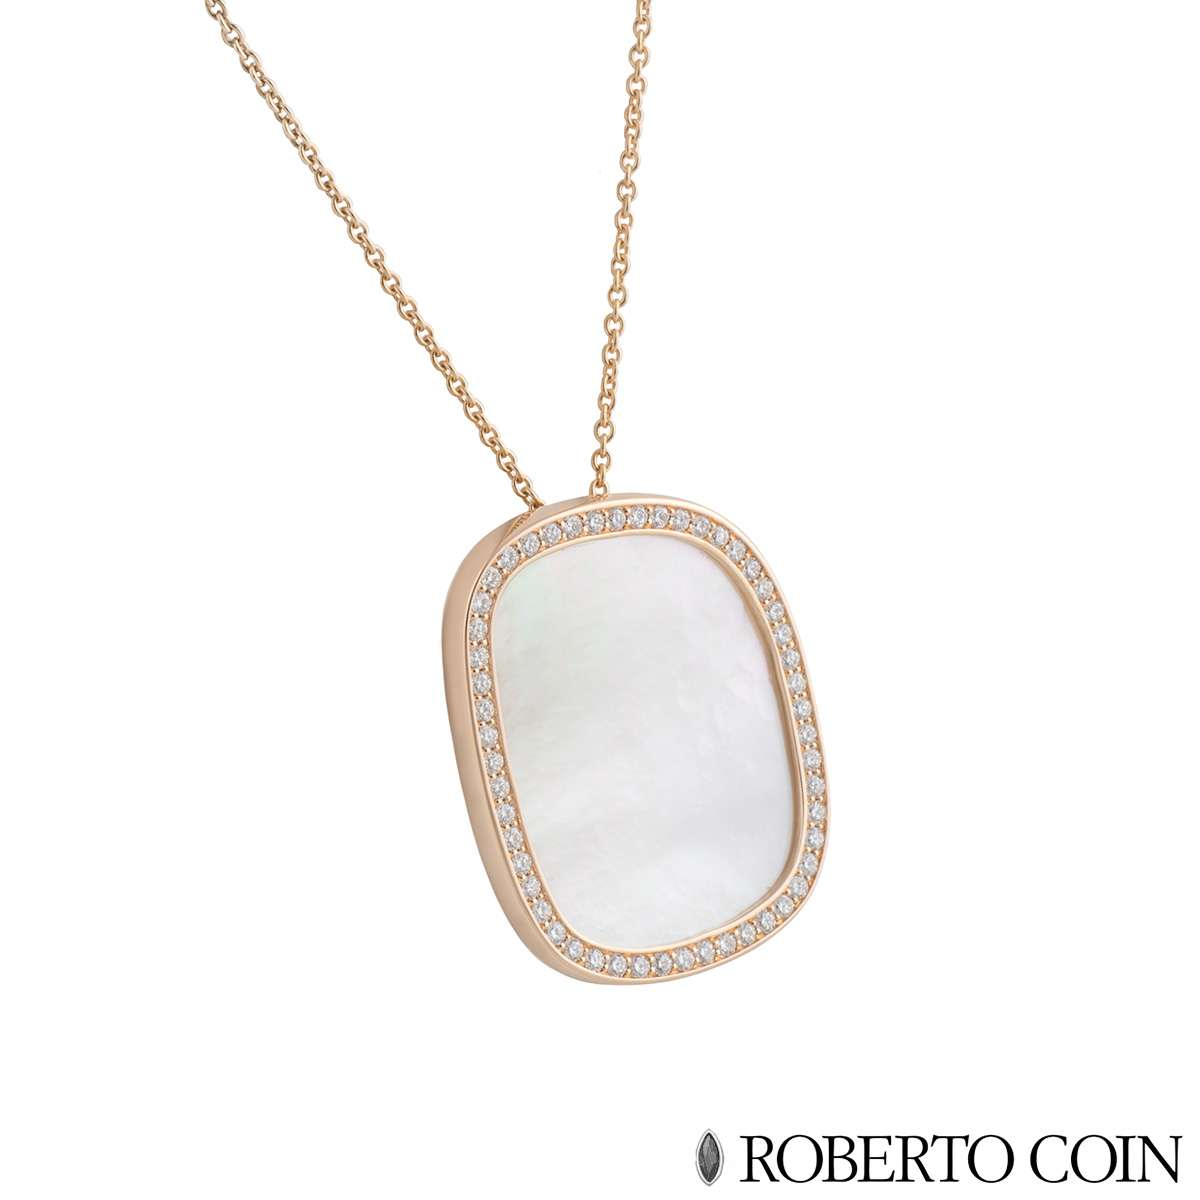 Roberto Coin Diamond and Mother of Pearl Pendant 8881934AX31M